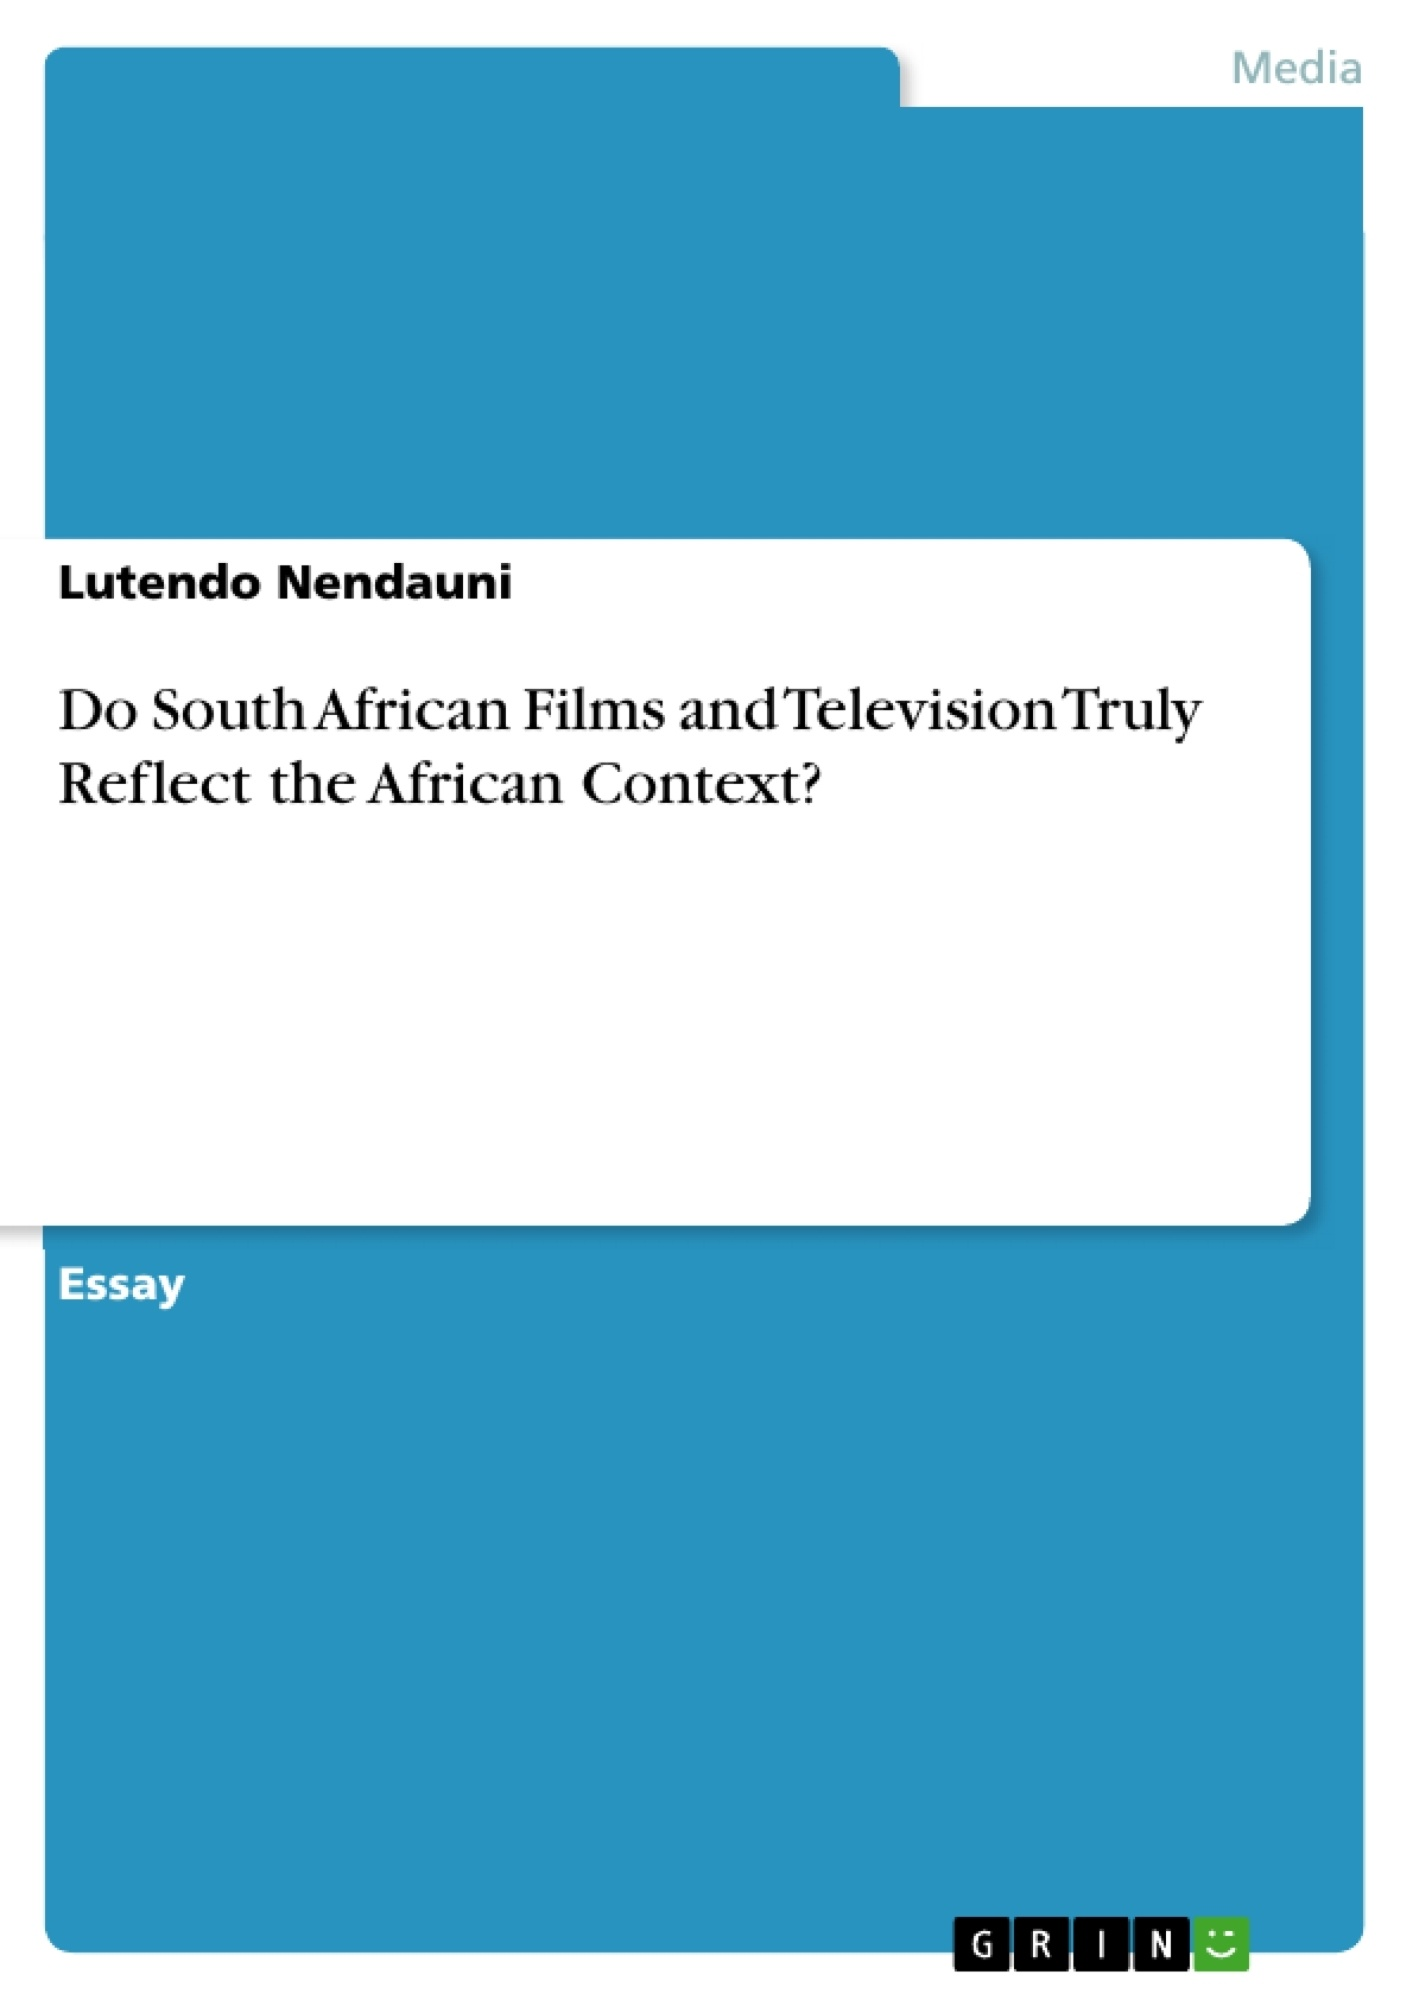 Title: Do South African Films and Television Truly Reflect the African Context?